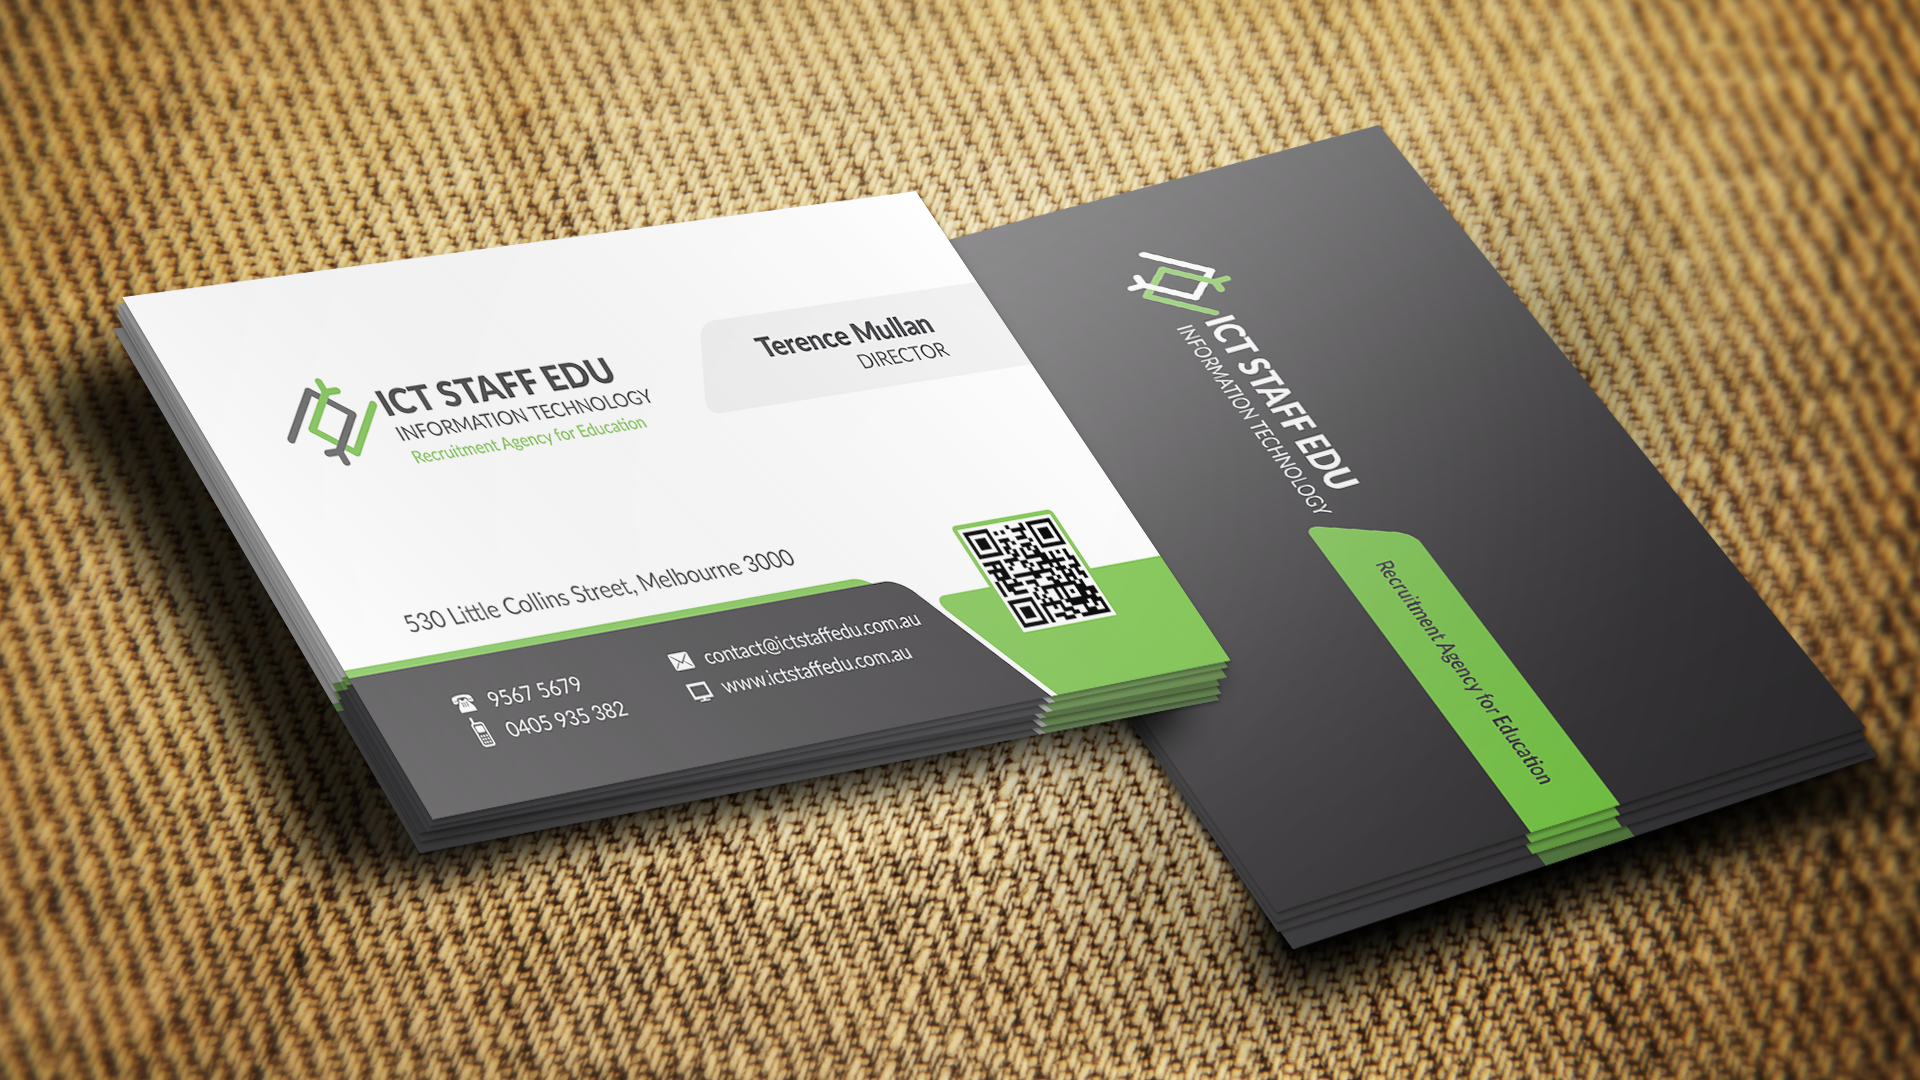 Business Card Design by NYCDevelopers on Guru